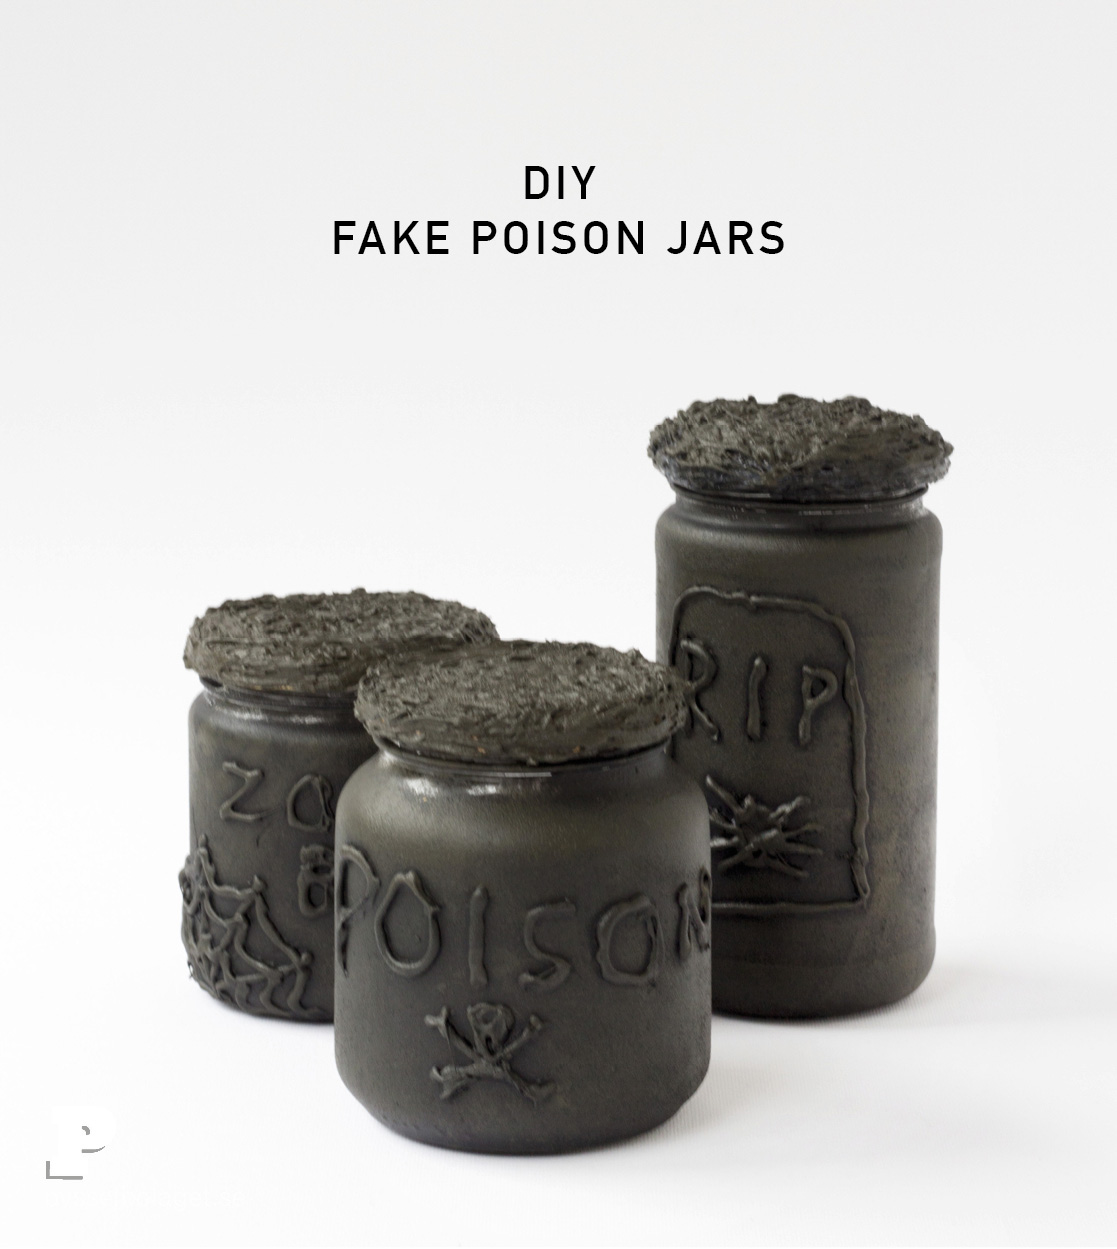 Fake Poison Jars by Pysselbolaget